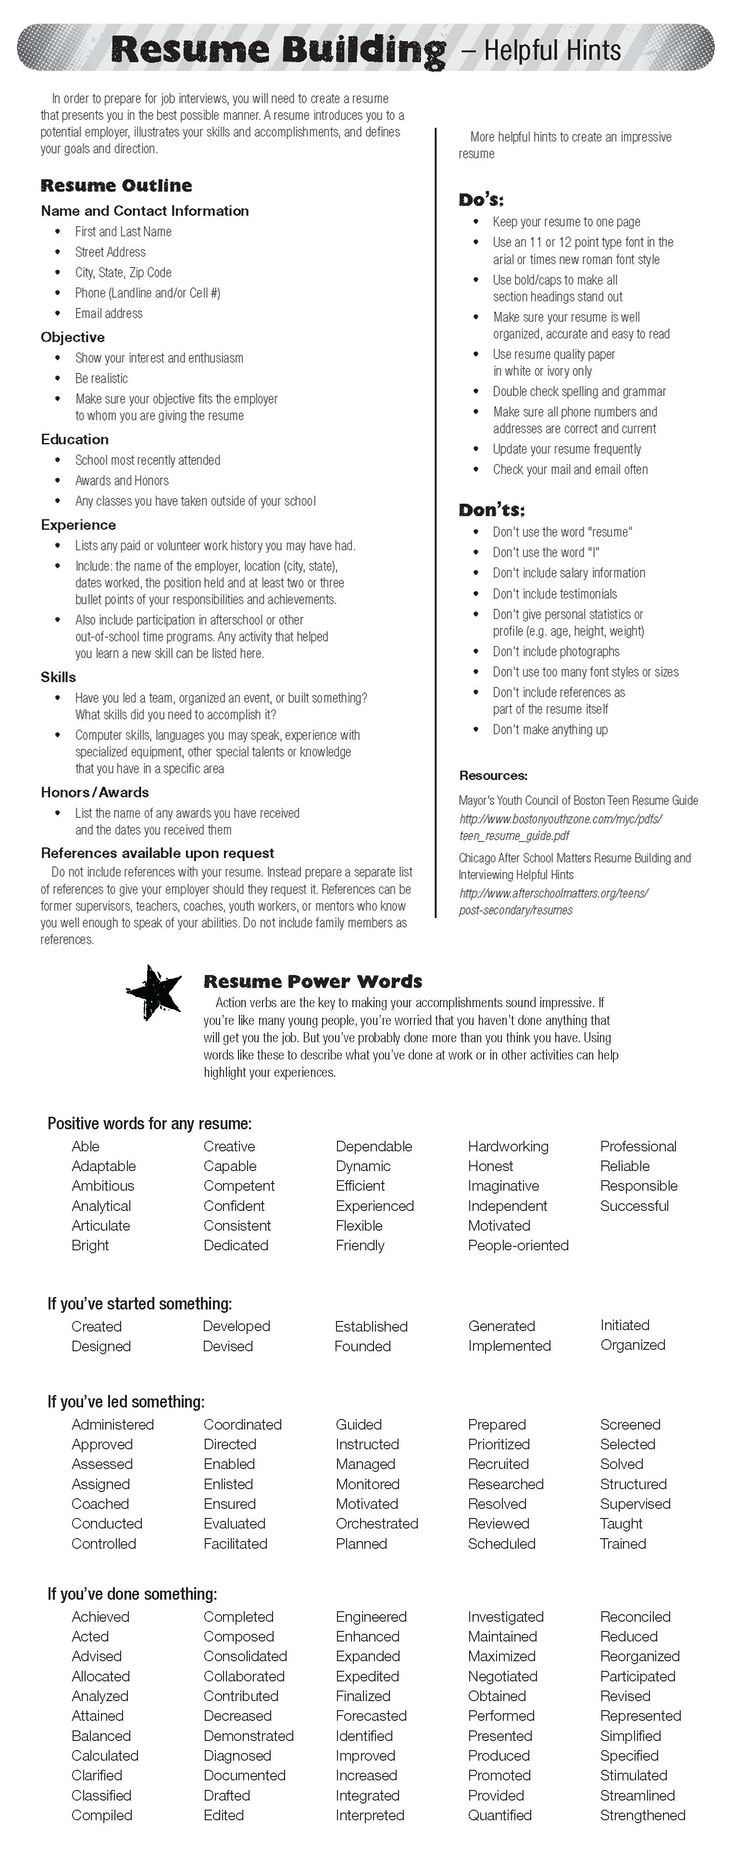 Picnictoimpeachus  Stunning  Ideas About Resume On Pinterest  Cv Format Resume Cv And  With Fetching  Ideas About Resume On Pinterest  Cv Format Resume Cv And Resume Templates With Beauteous Template Of Resume Also Resume Coverletter In Addition Resumes Builder And Teachers Aide Resume As Well As Optimal Resume Everest Additionally Uga Career Center Resume From Pinterestcom With Picnictoimpeachus  Fetching  Ideas About Resume On Pinterest  Cv Format Resume Cv And  With Beauteous  Ideas About Resume On Pinterest  Cv Format Resume Cv And Resume Templates And Stunning Template Of Resume Also Resume Coverletter In Addition Resumes Builder From Pinterestcom